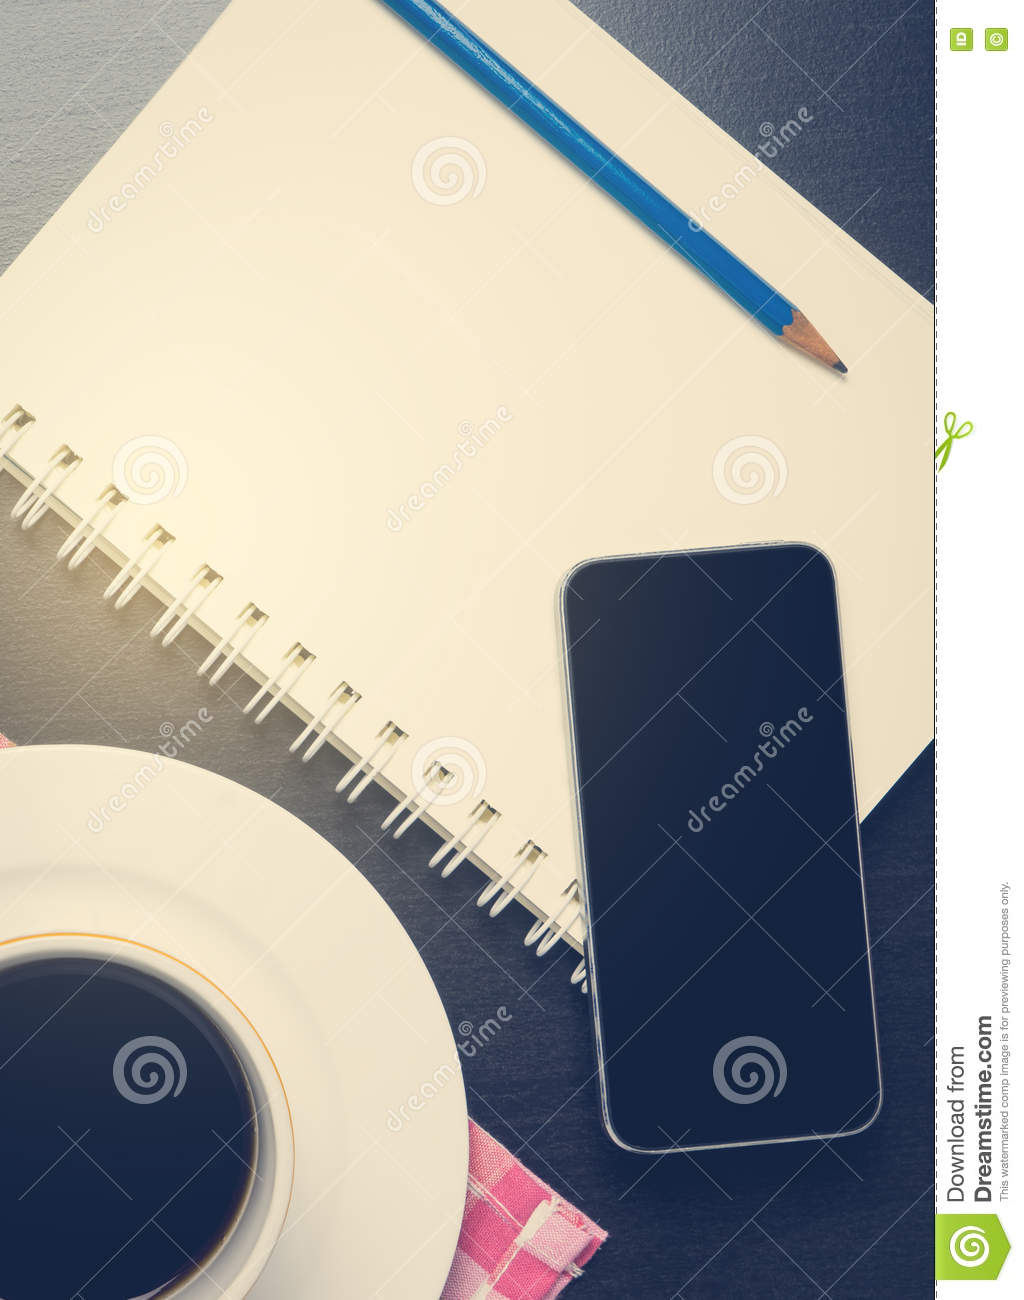 Mobile phone on Notebook with black hot coffee